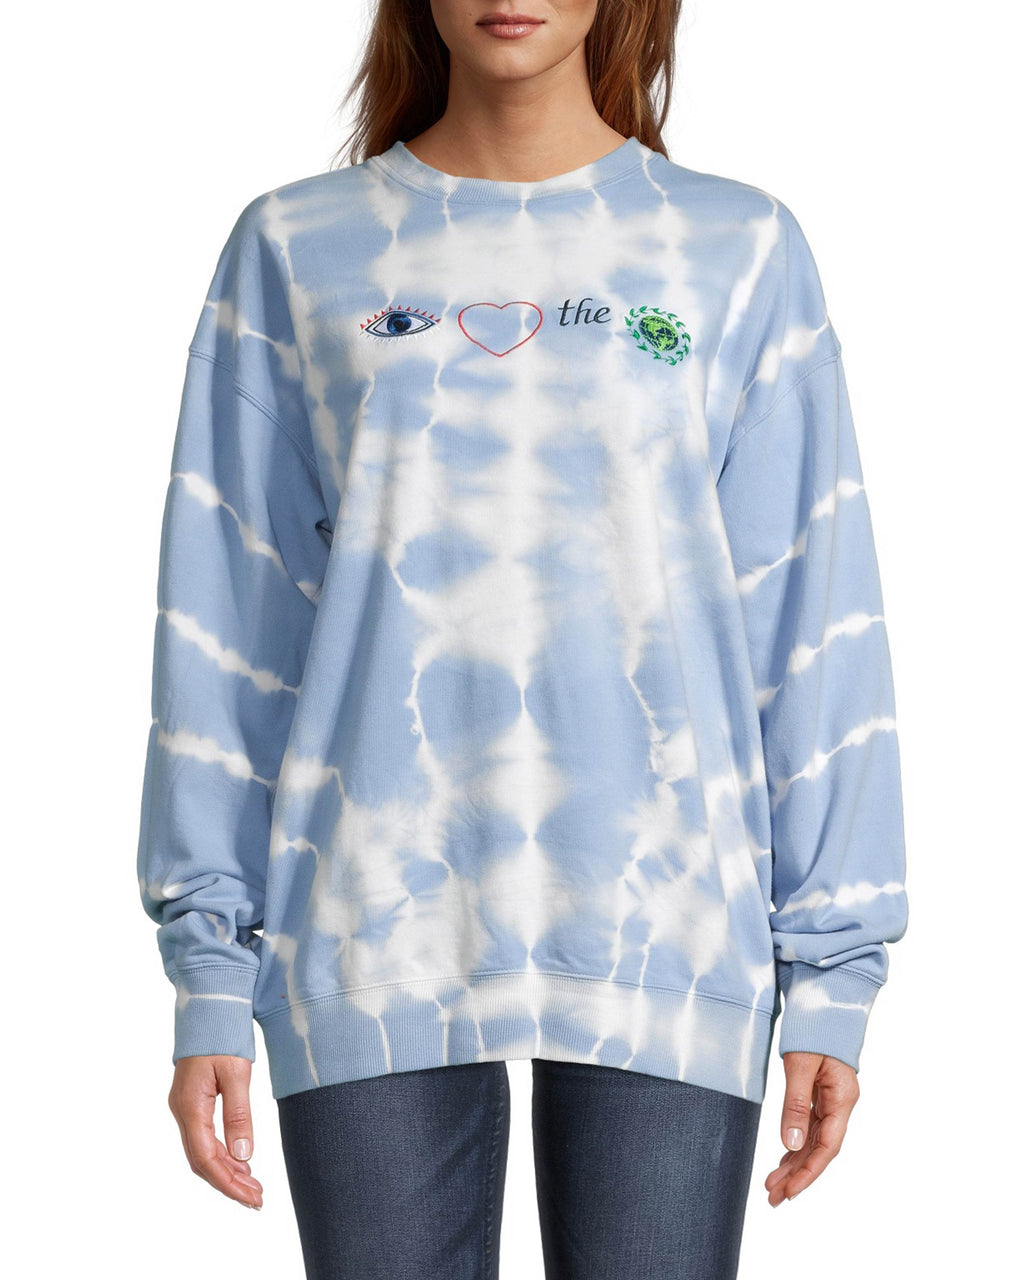 CT18555 - TIE DYE EMBROIDERED CREW NECK SWEATSHIRT - tops - knitwear - Wear your love for our planet on your sleeve with this cozy sweatshirt. This 100% cotton style features intricate embroidery of our signature evil eye, a heart and an earth against vibrant blue tie dye. Add 1 line break Stylist Tip: Pair with our matching shorts for a complete set.